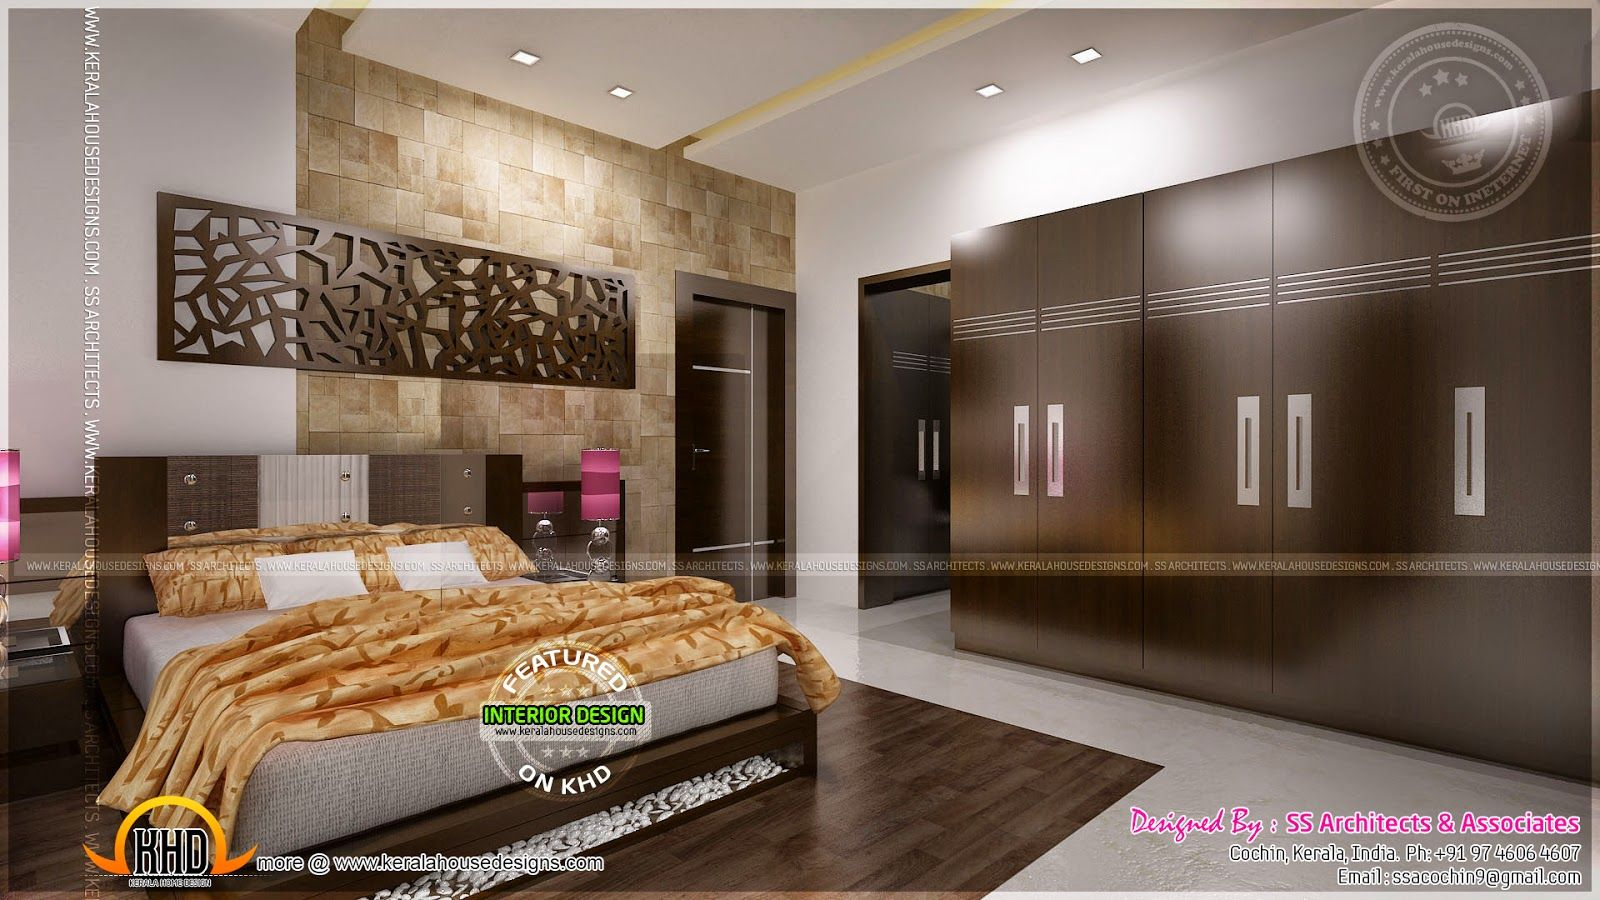 Indian Bedroom Interiors Google Search Master Bedroom Interior Design Master Bedroom Layout Bedroom Interior